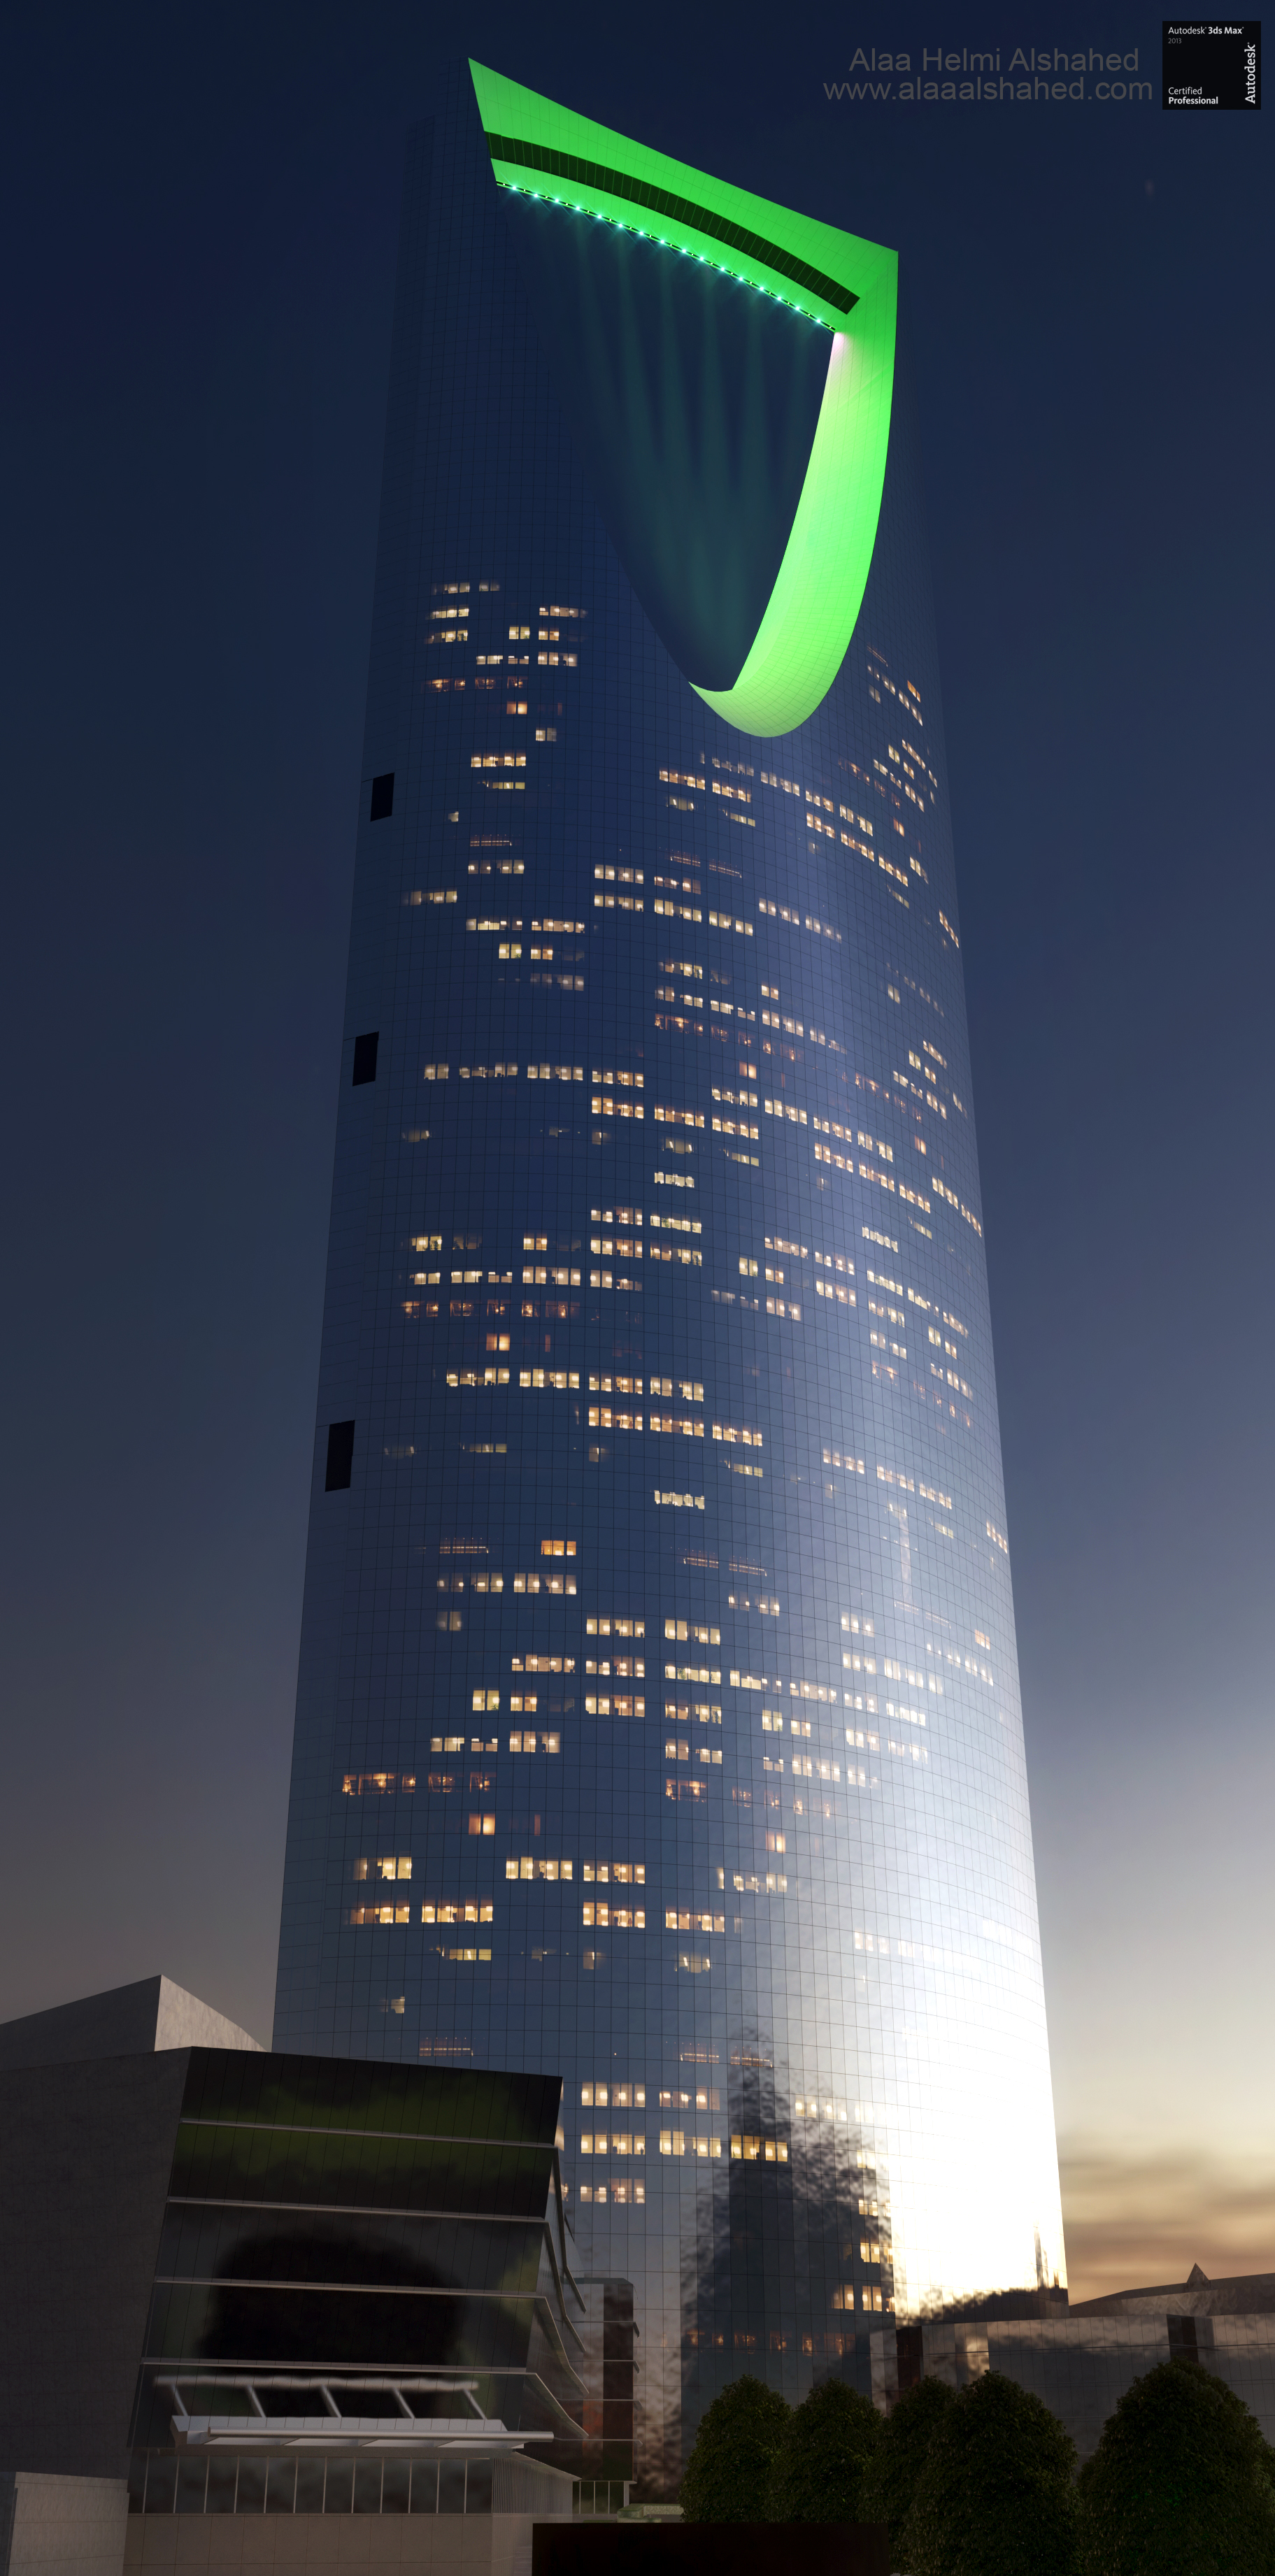 Kingdom Tower of Riyadh